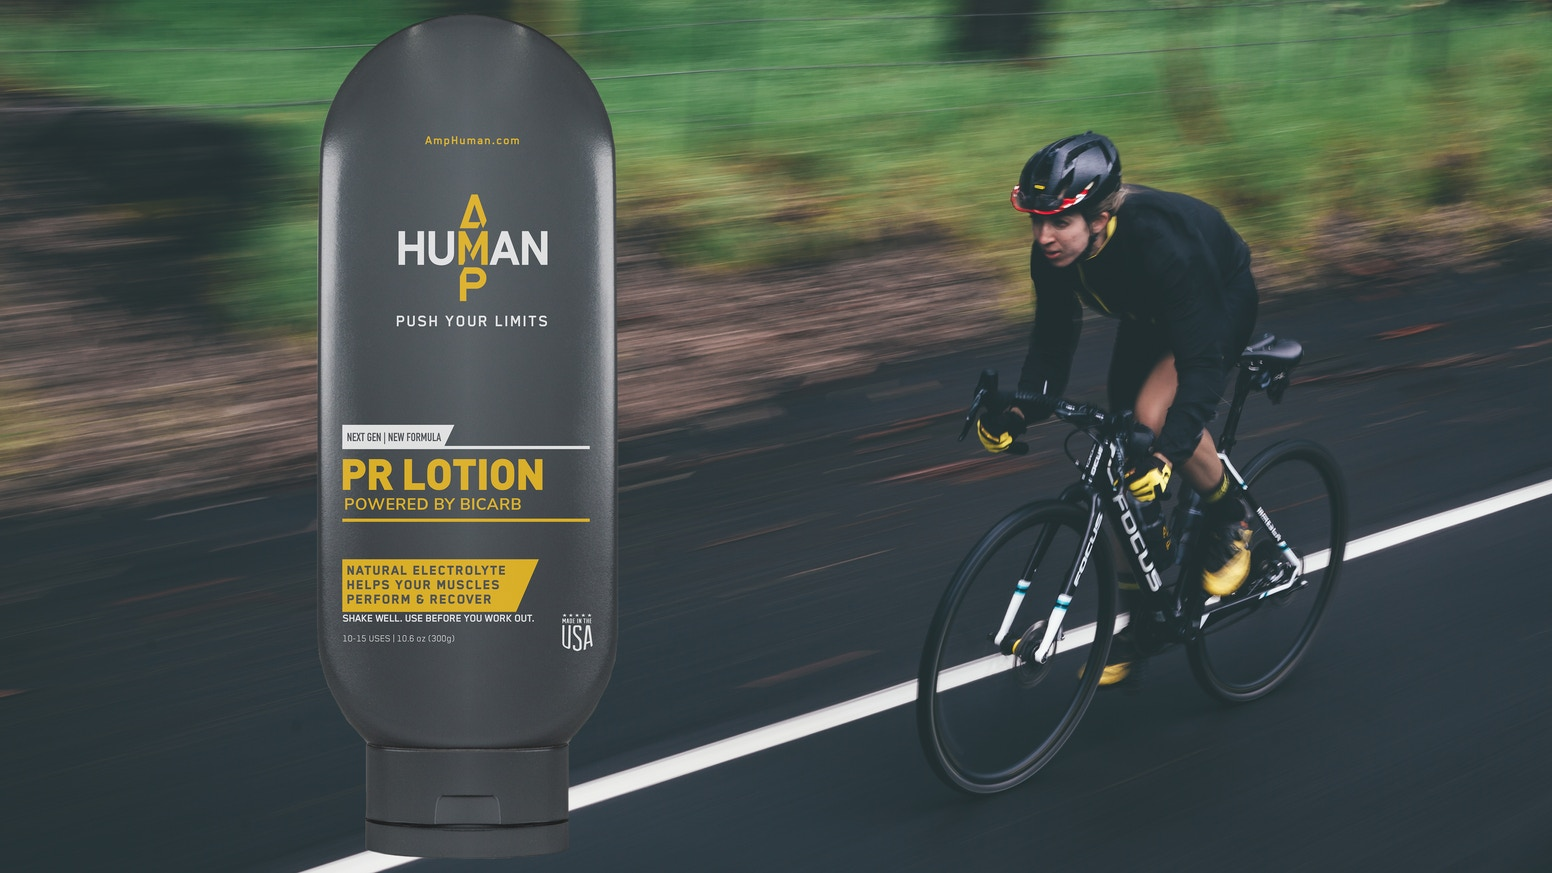 PR Lotion neutralizes acid in your muscles so you can work out harder, for longer, with faster recovery. This campaign is over, but you can learn more or buy PR Lotion at amphuman.com.